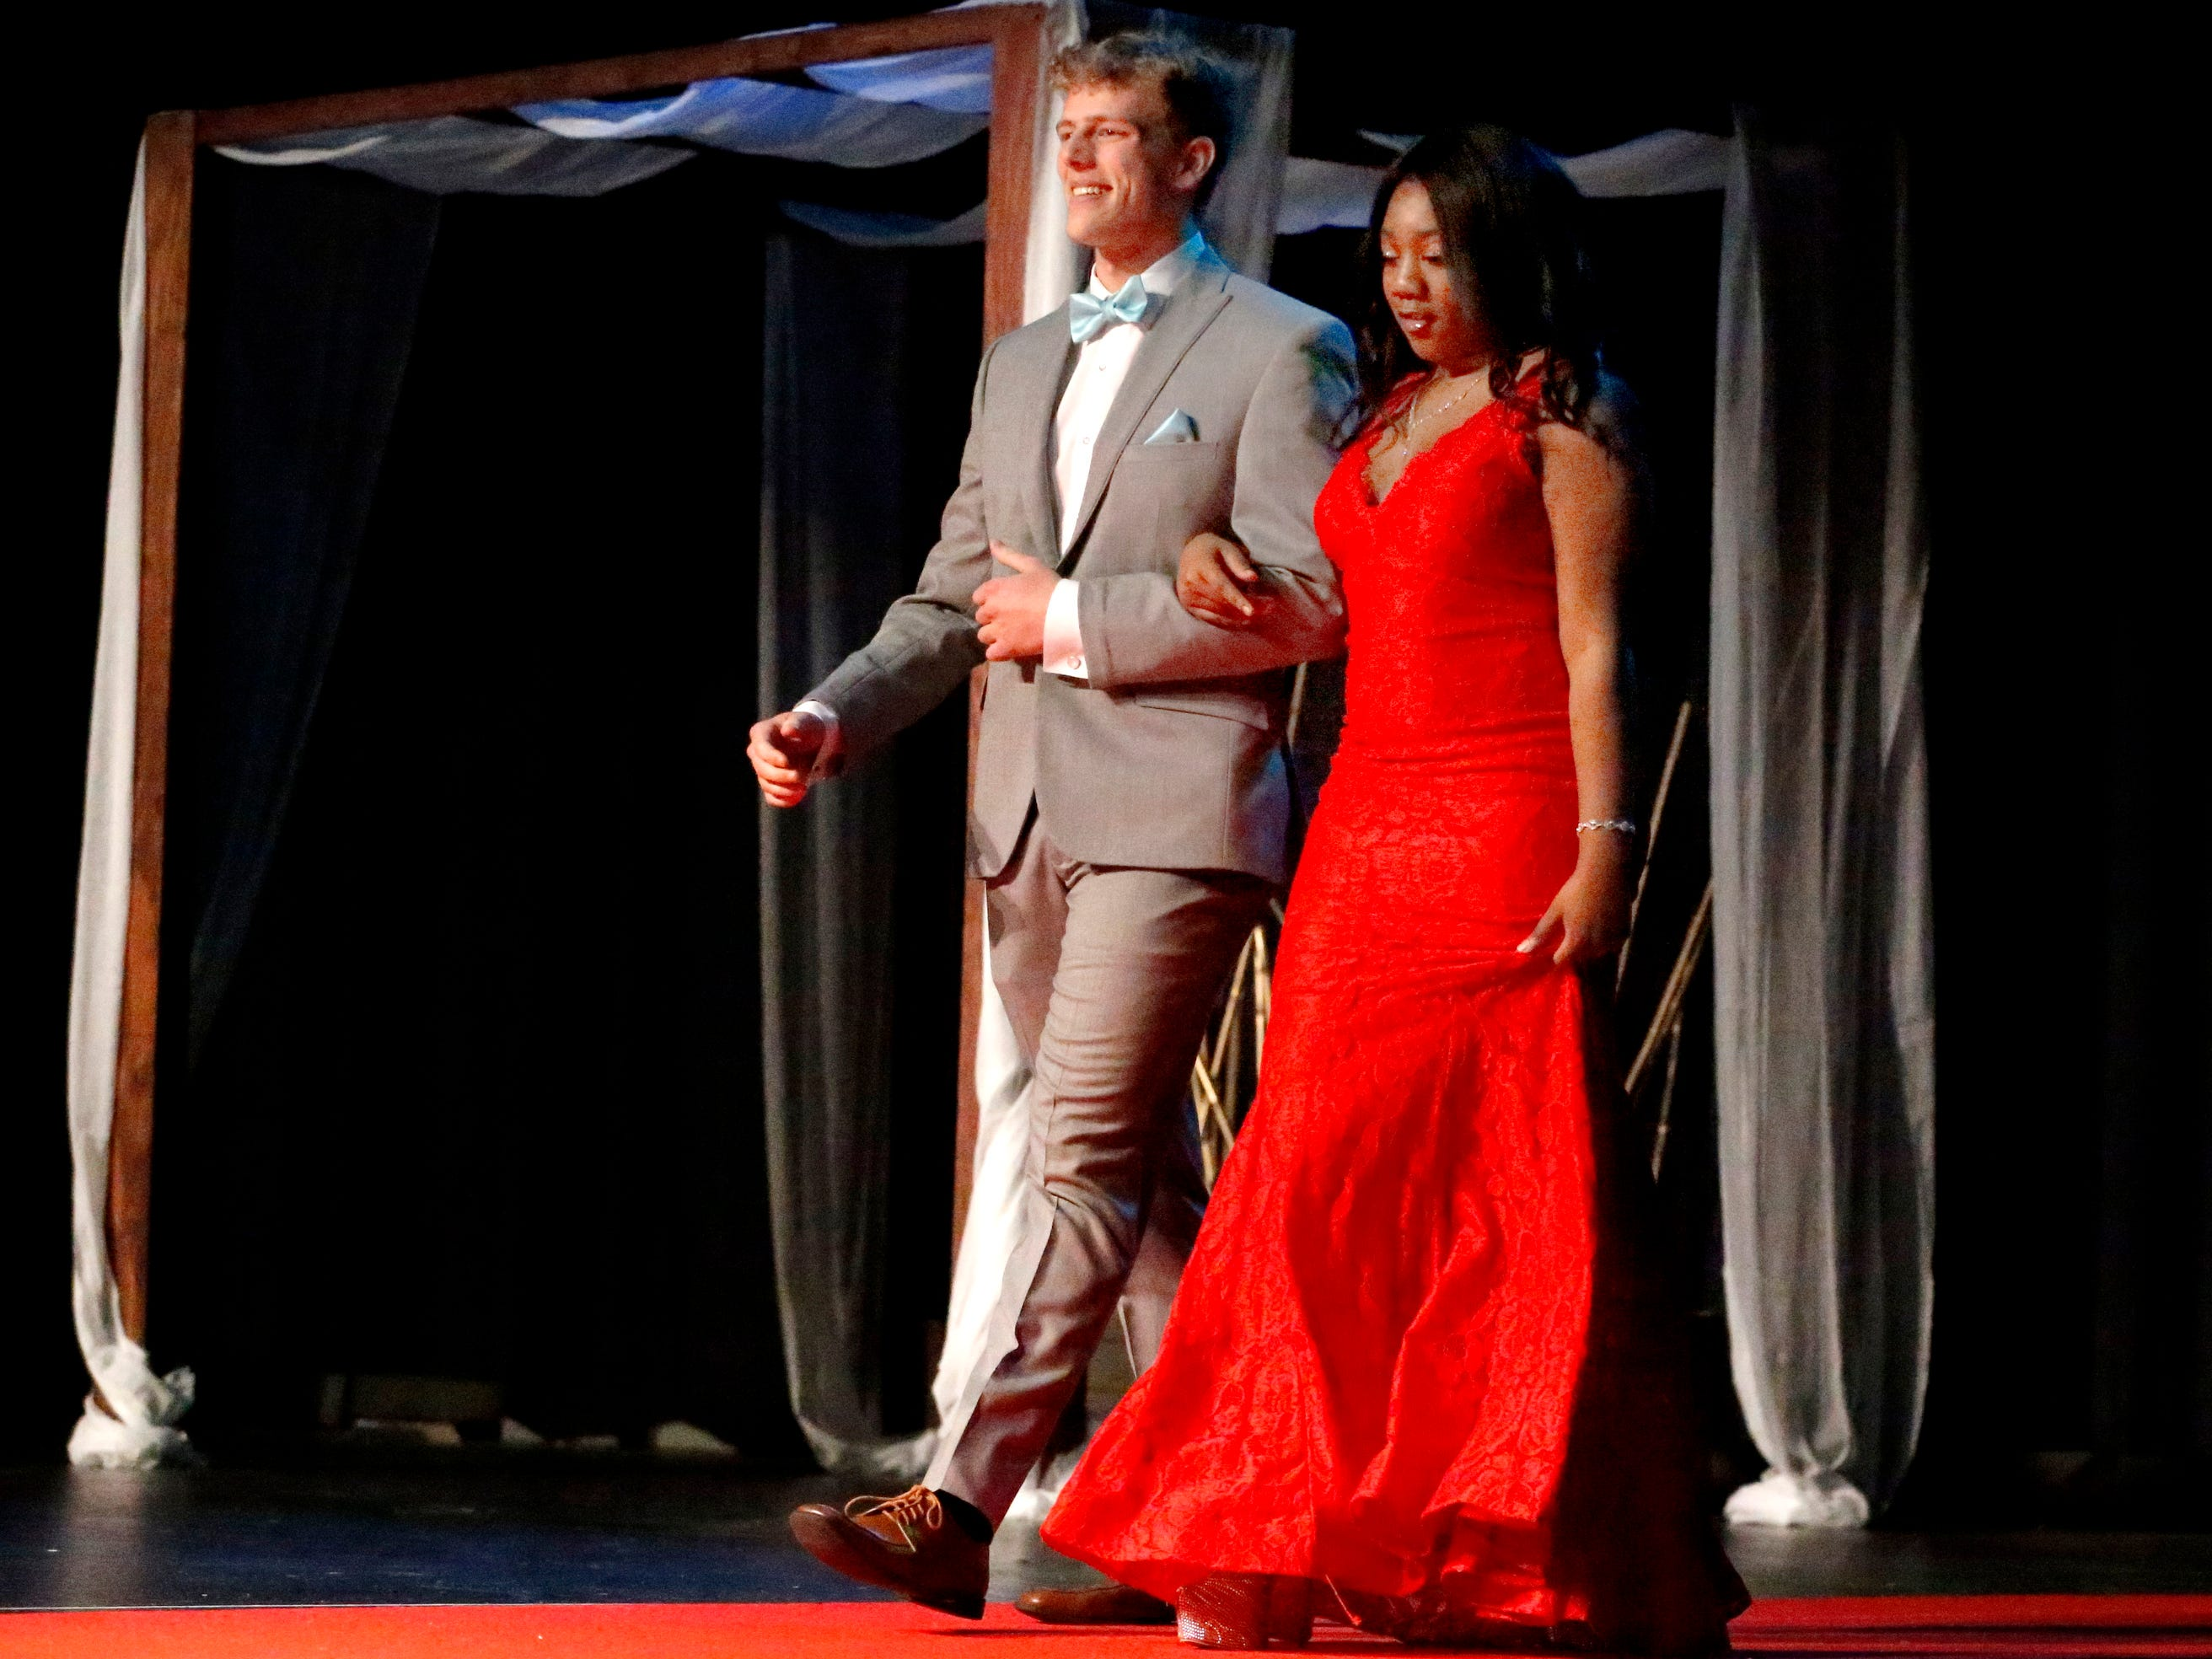 Patrick Moss, left and Kayla Daniels, right show off the latest in prom fashions during the Siegel Prom Fashion show on Thursday, Feb. 14, 2019.